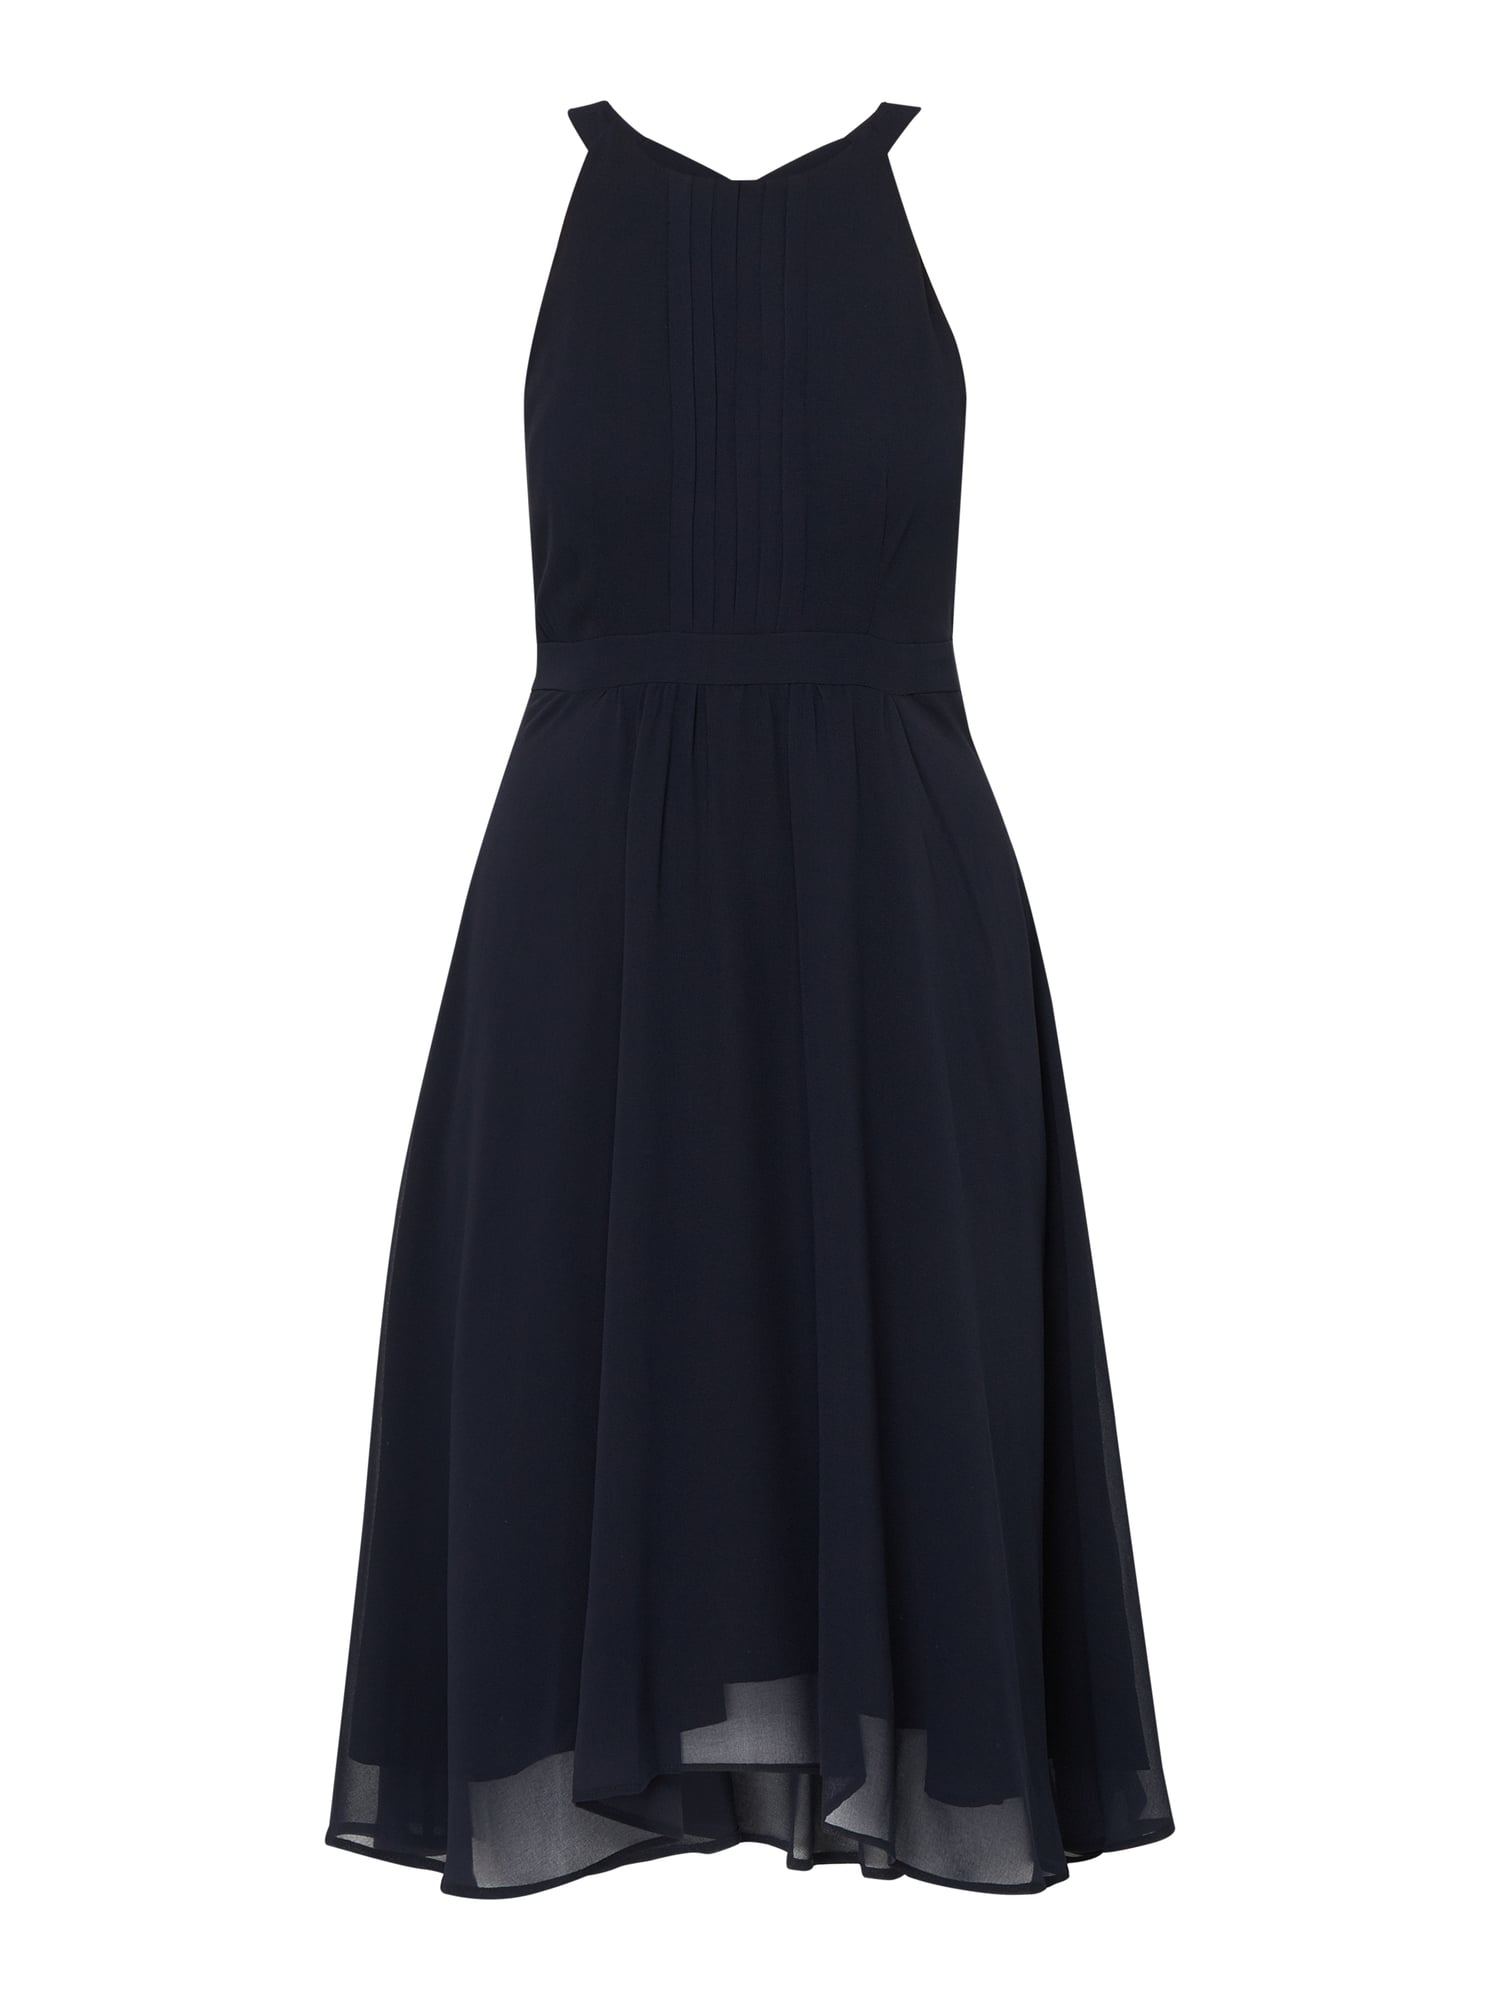 ESPRIT COLLECTION Cocktailkleid aus Chiffon mit Biesen in Blau / Türkis  online kaufen (17) ▷ P&C Online Shop